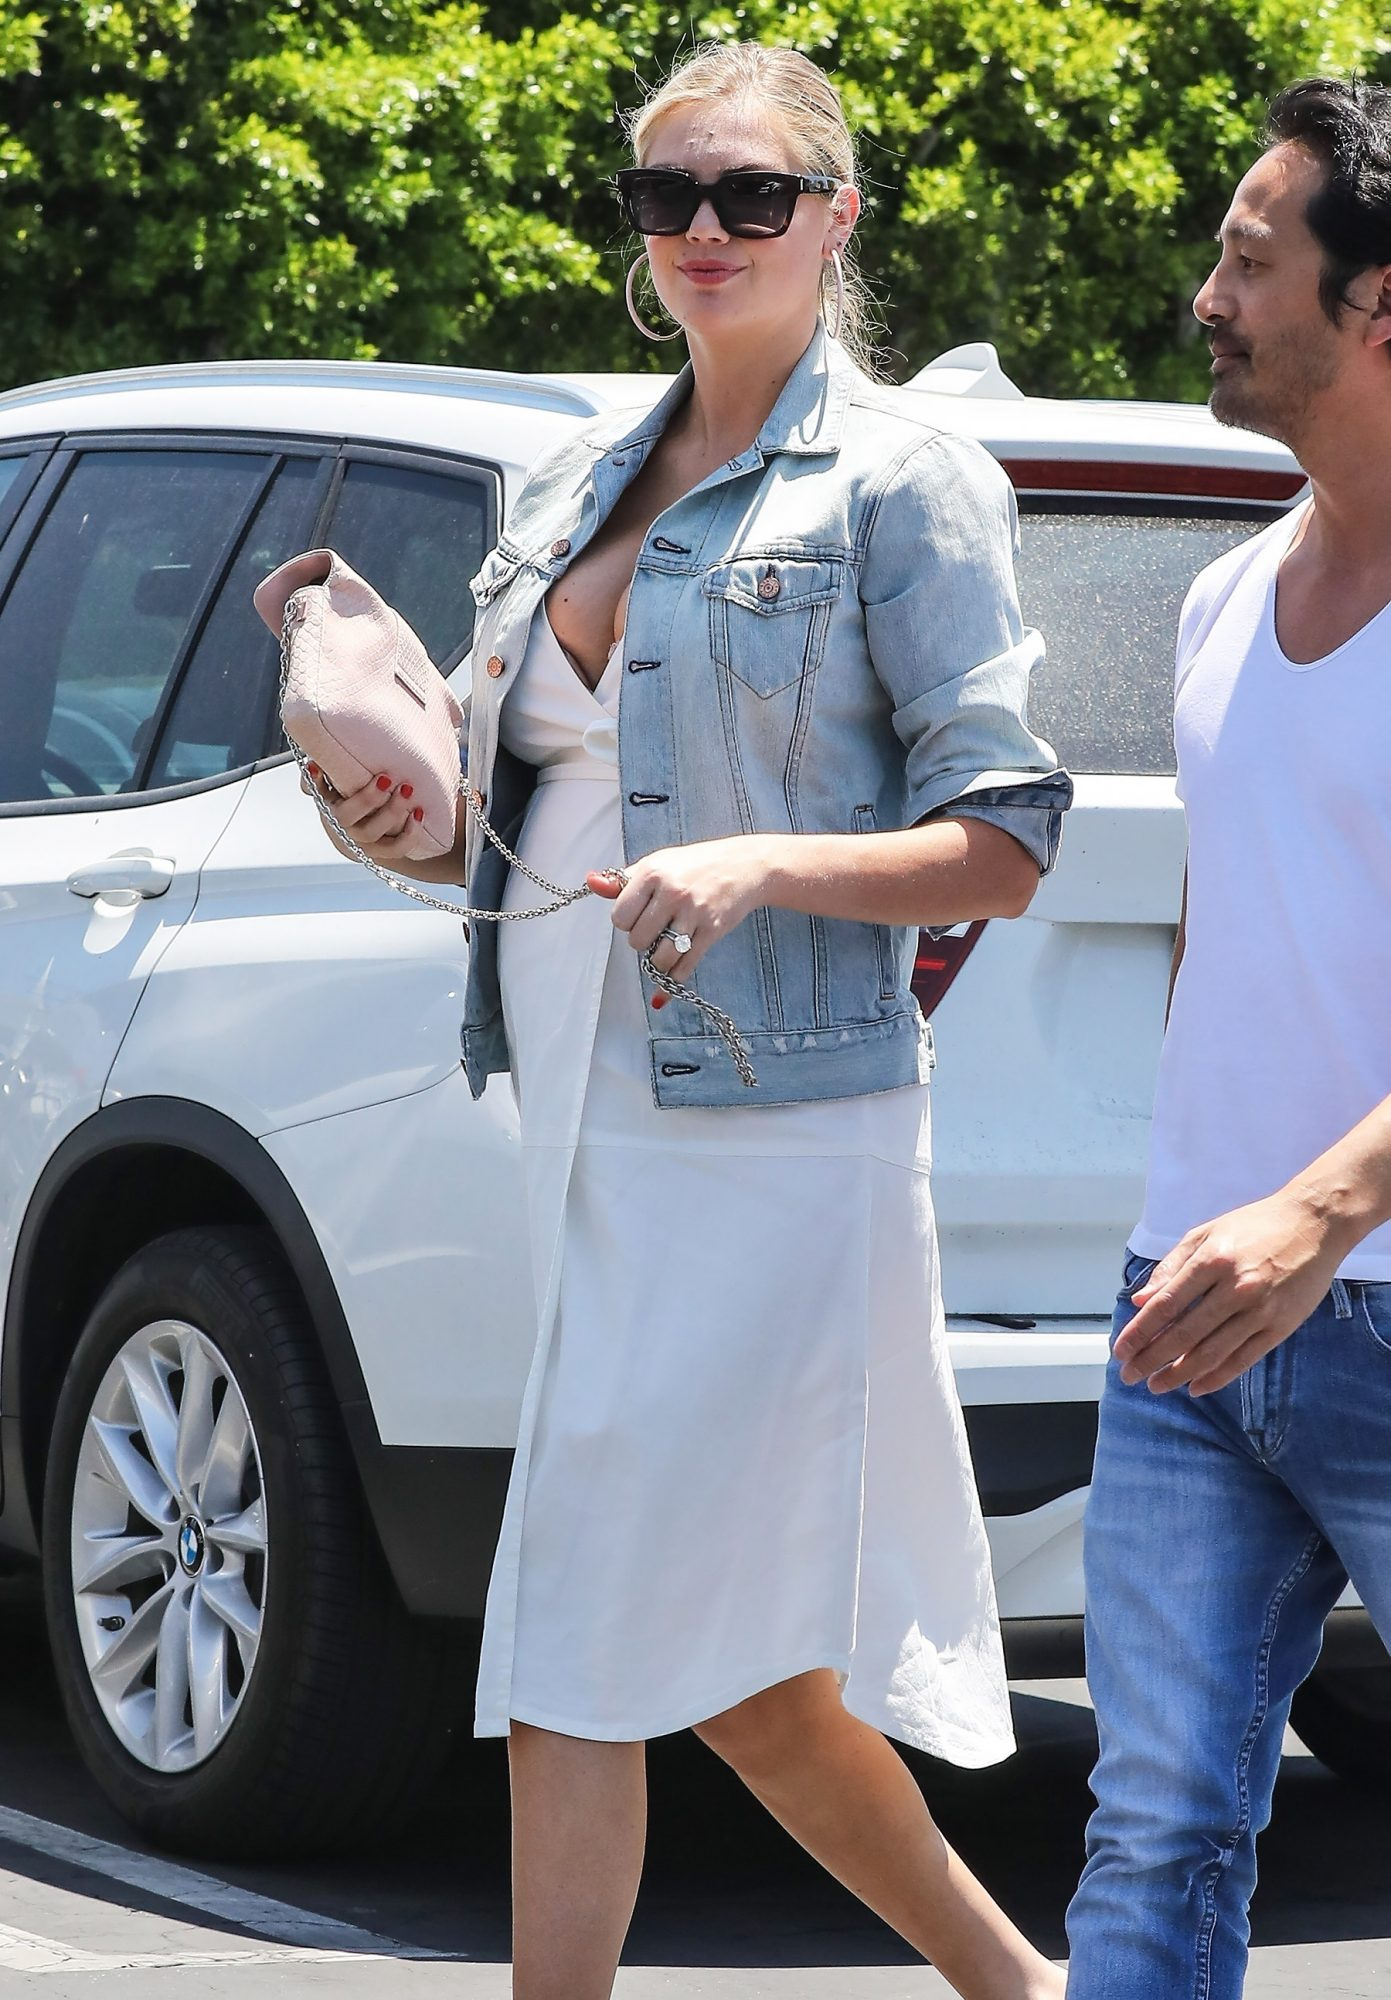 *EXCLUSIVE* Kate Upton shows off her growing baby bump at Mauro's Cafe in West Hollywood